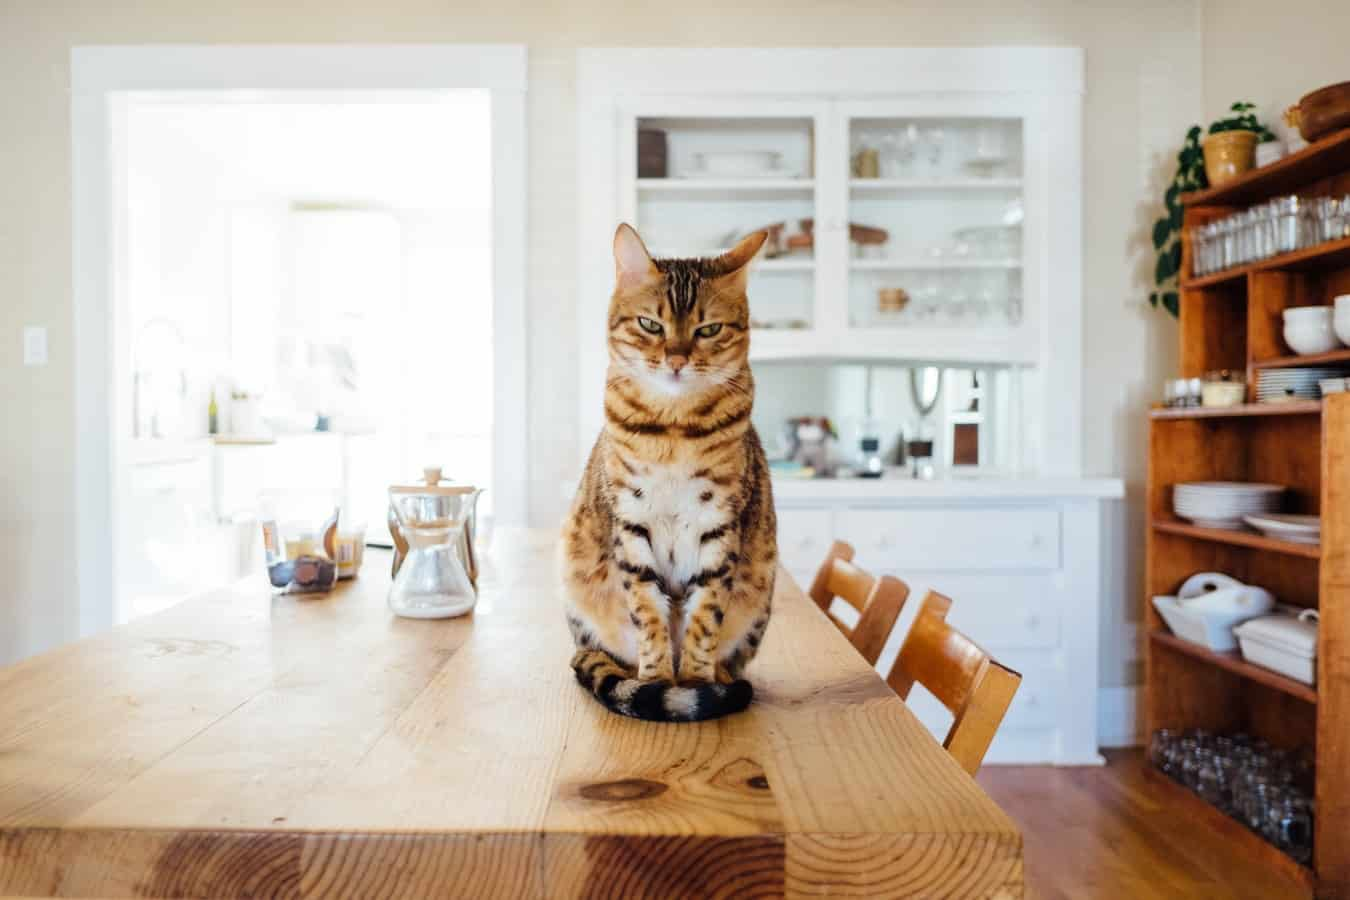 A cat sitting on top of a wooden table